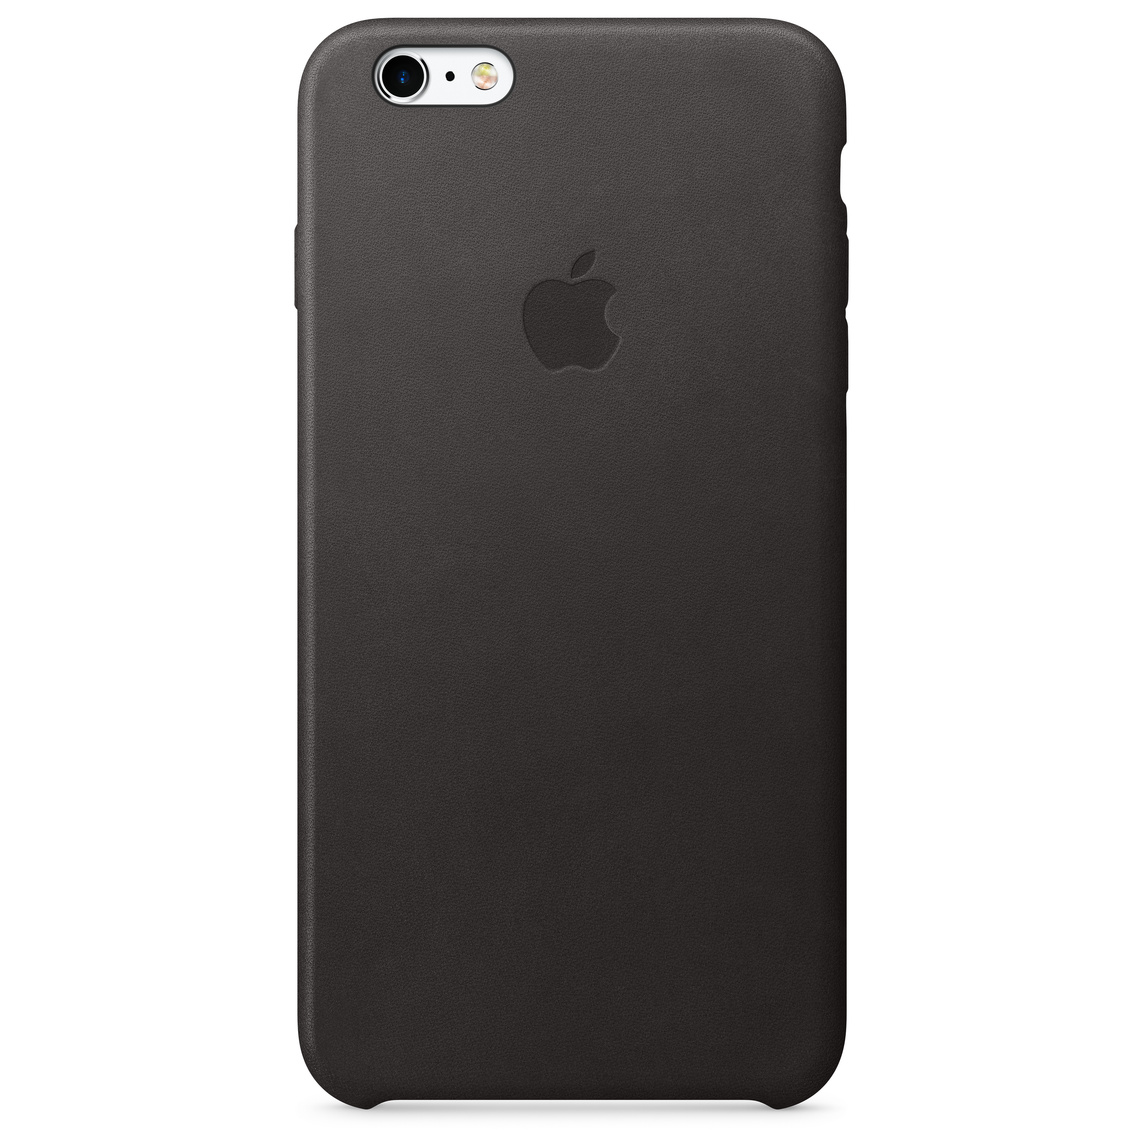 outlet store sale c1a44 1b22e iPhone 6 Plus / 6s Plus Leather Case - Black